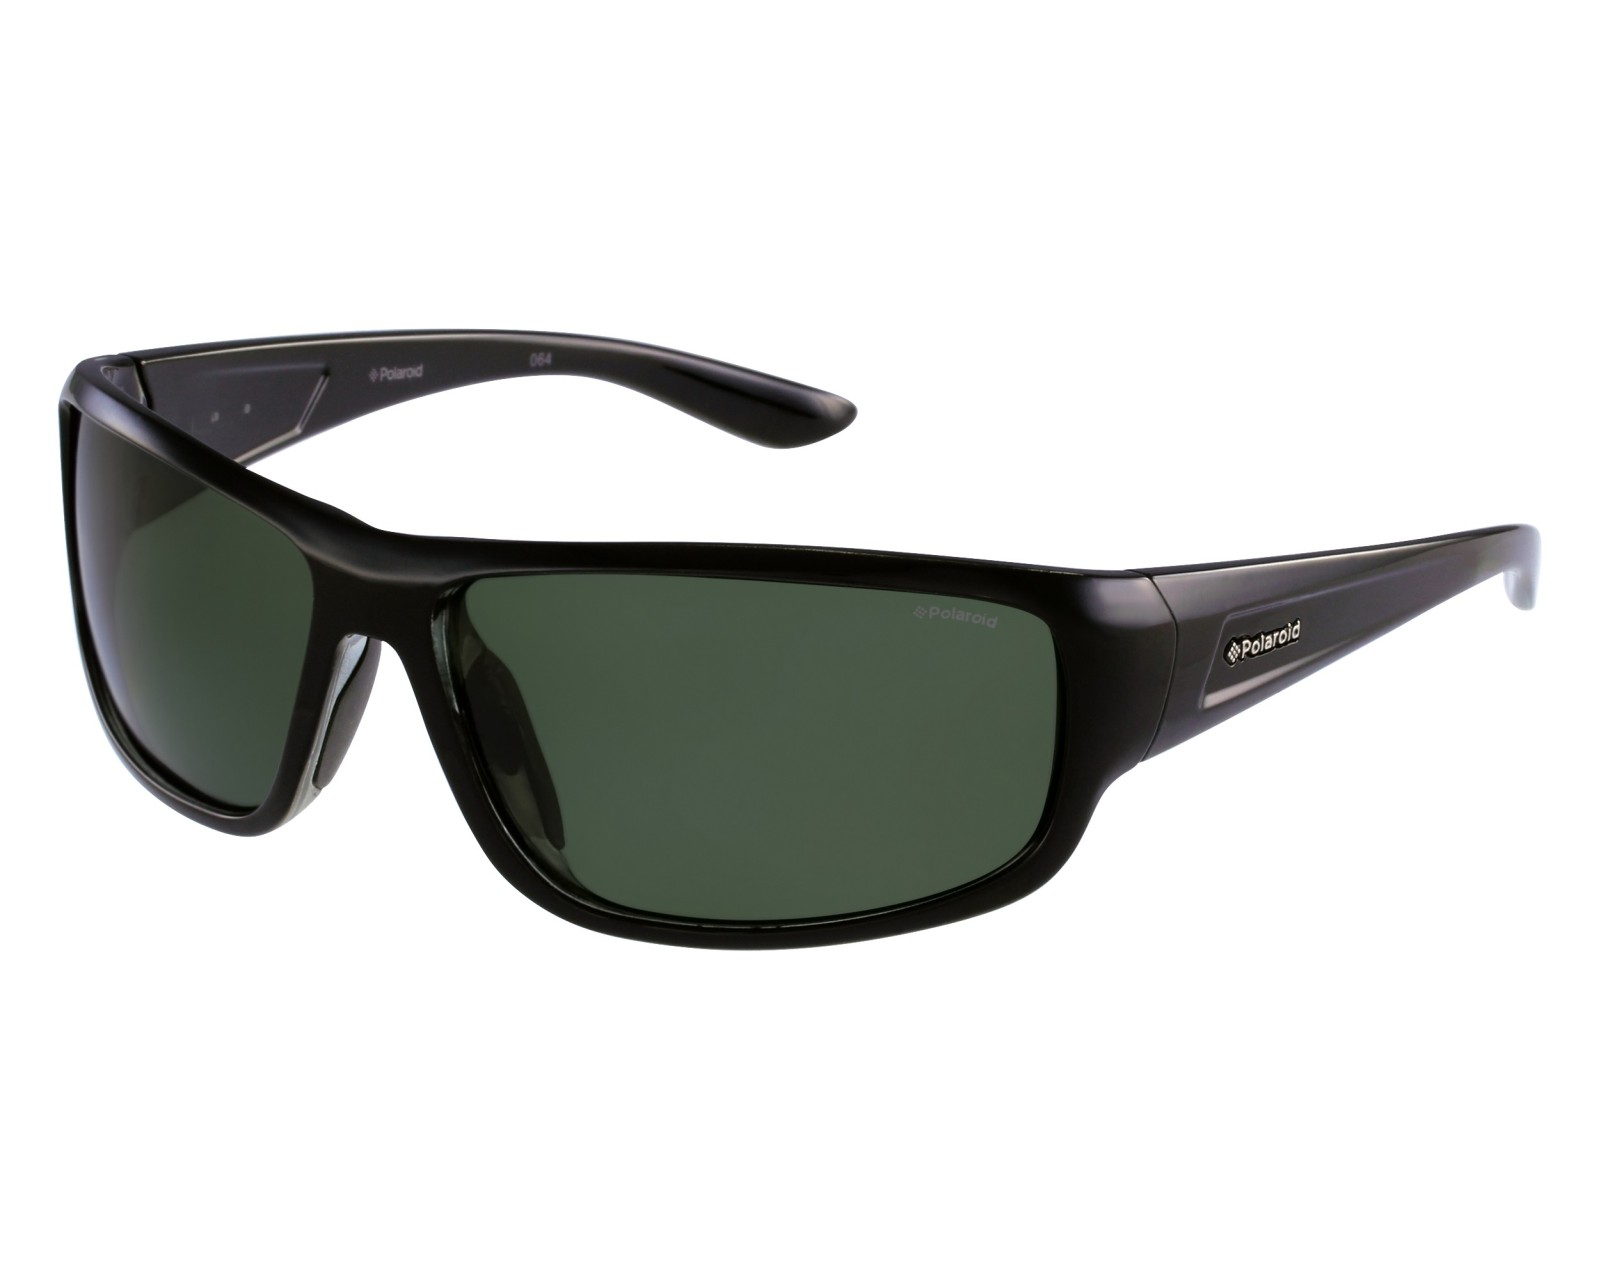 Sunglasses Polaroid P-8414 KIH RC - Black front view 945ef987fd